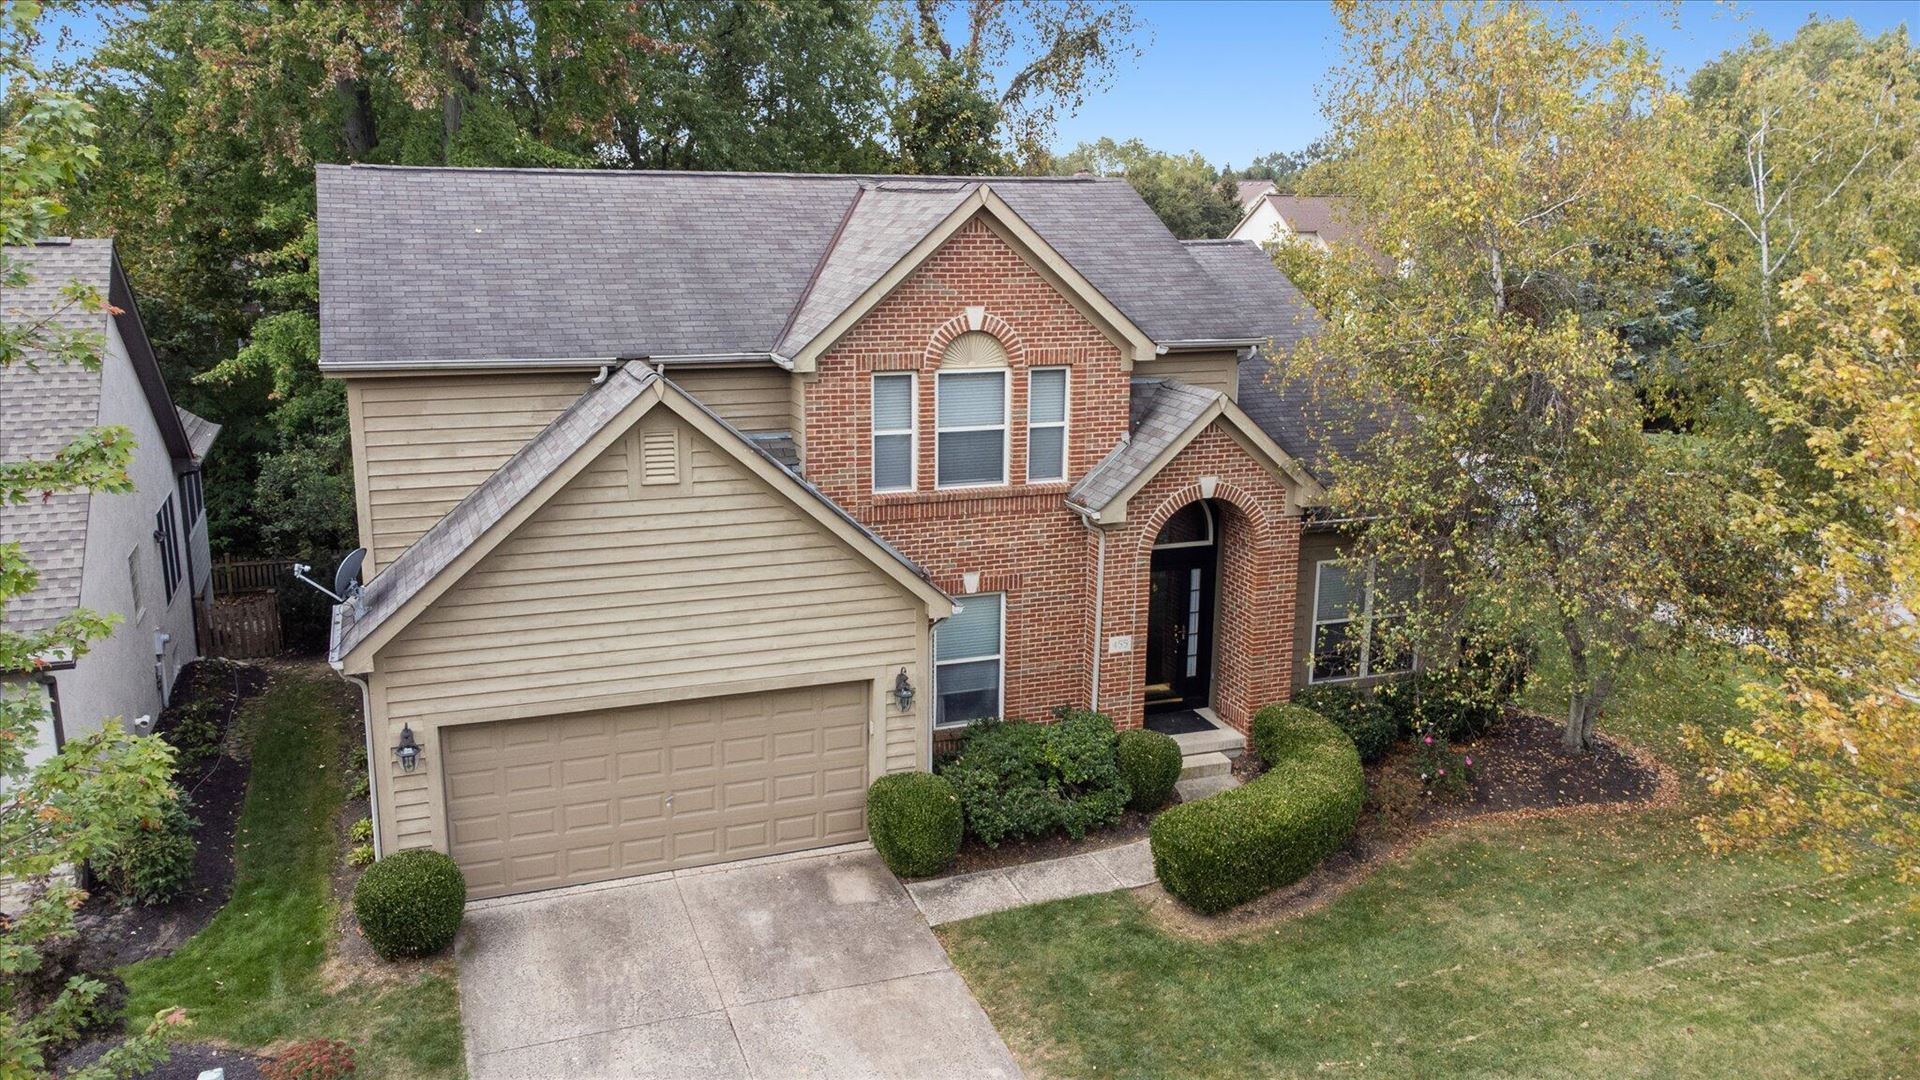 Photo of 455 Maplebrooke Drive W, Westerville, OH 43082 (MLS # 221039902)